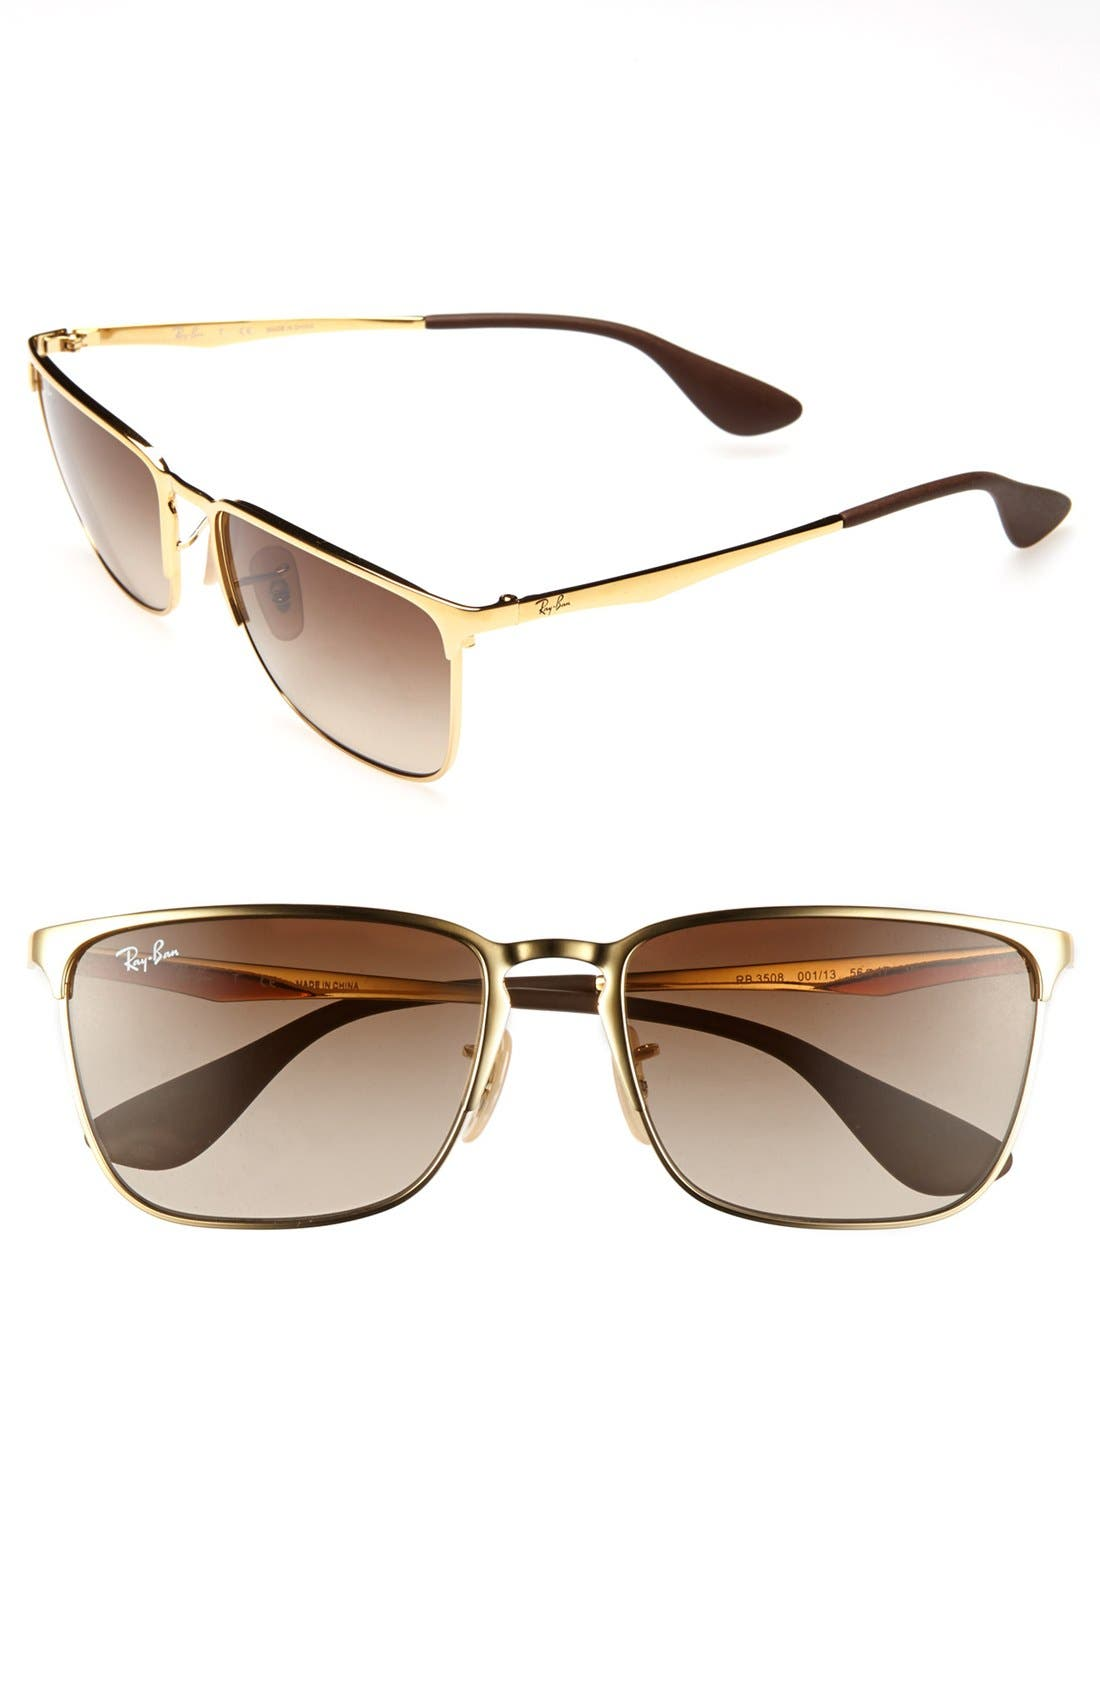 Main Image - Ray-Ban 'Youngster' 56mm Sunglasses